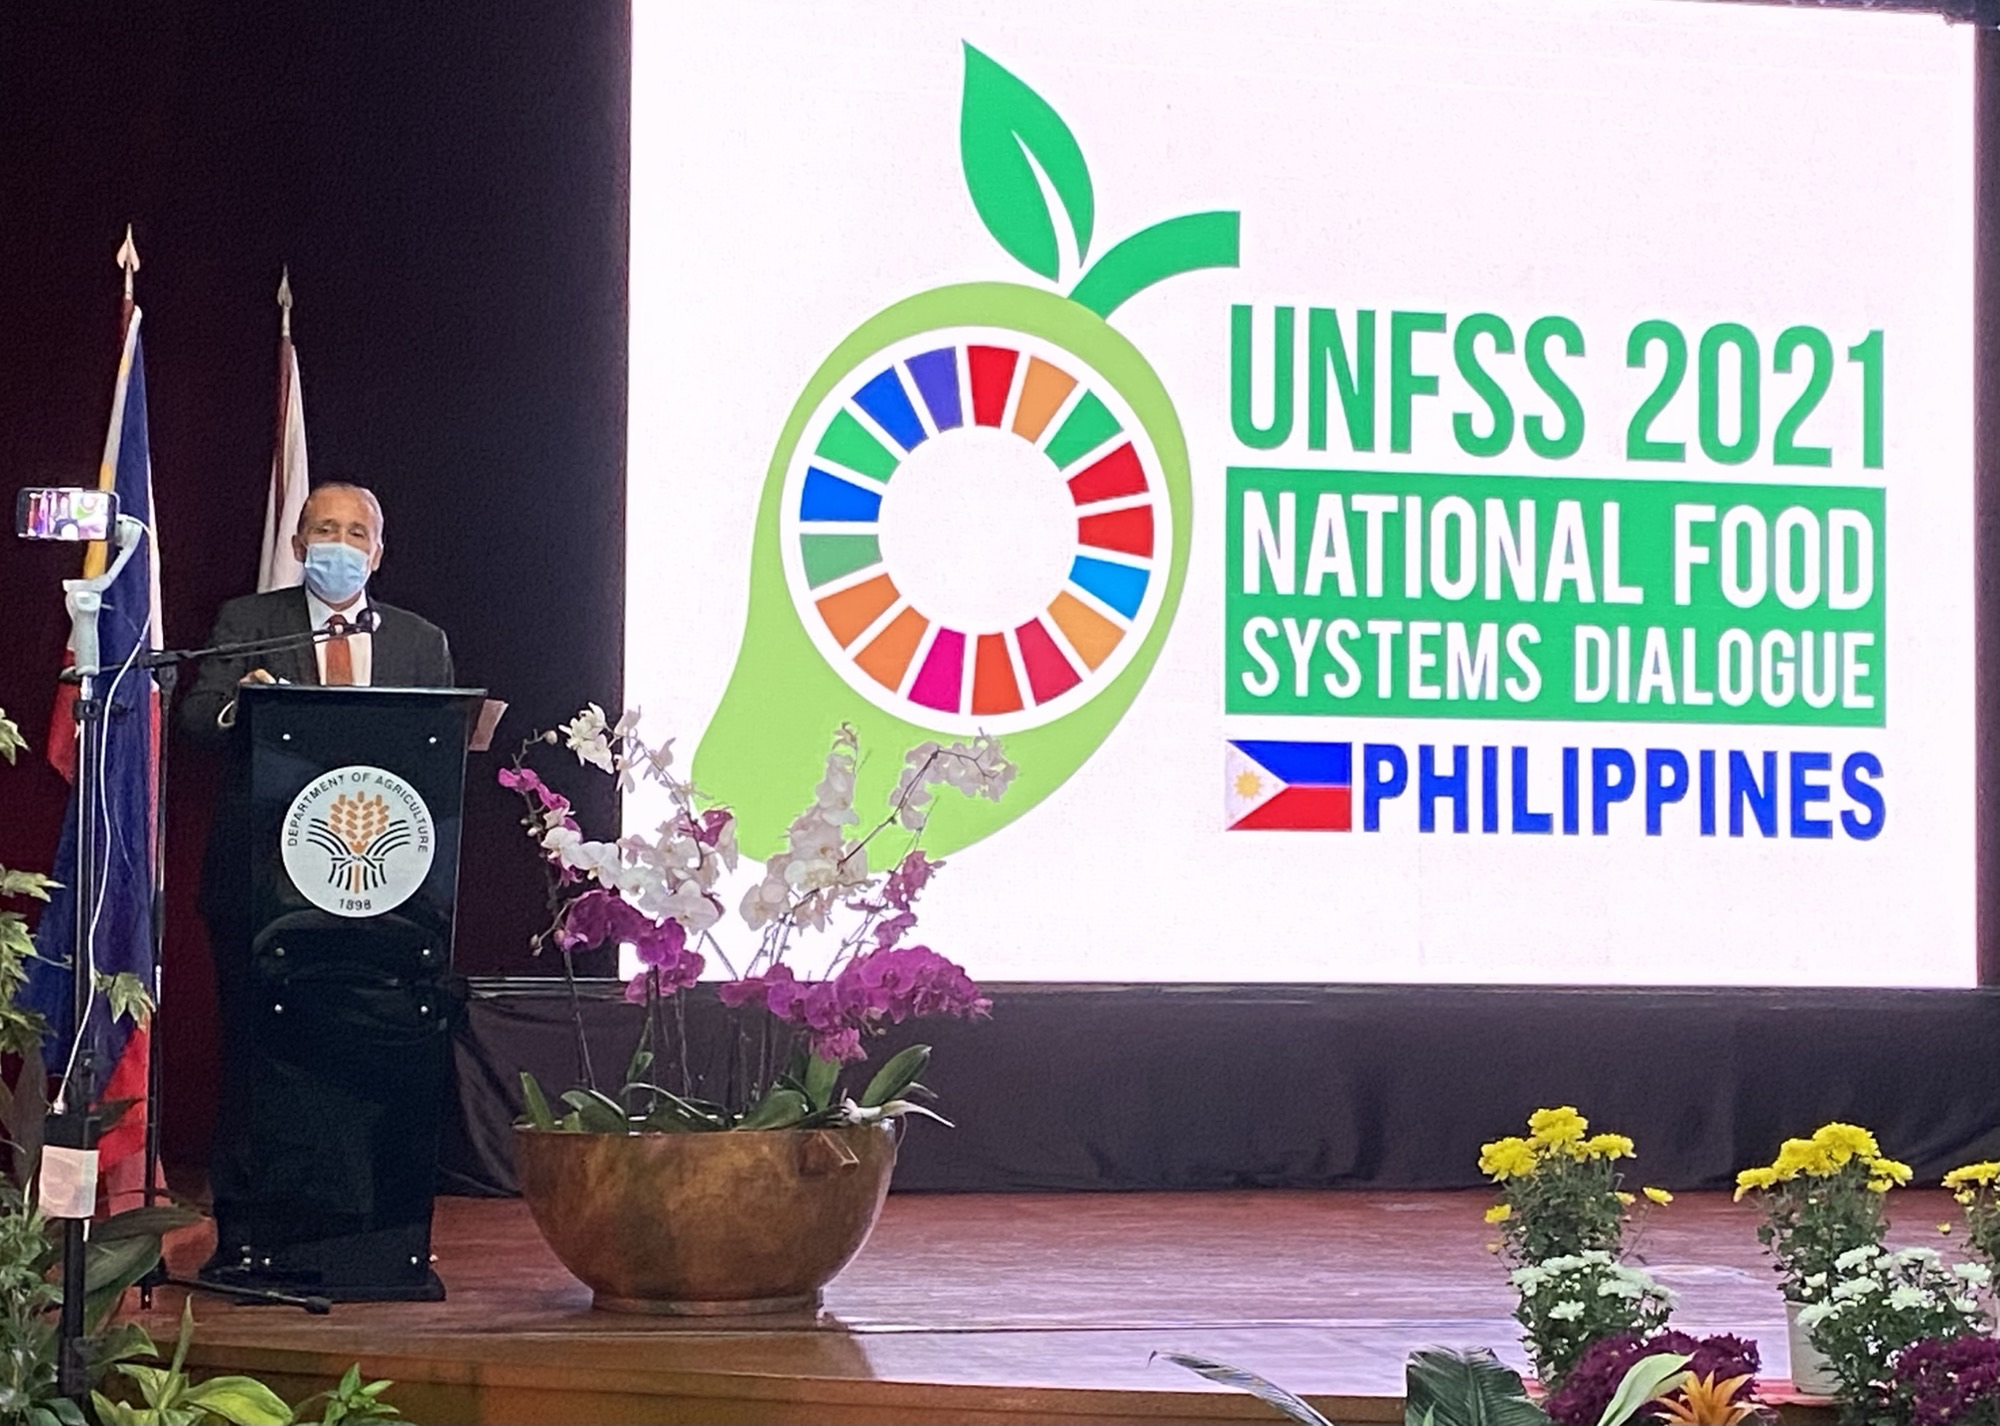 UNRC at the opening of National Food Systems Dialogue